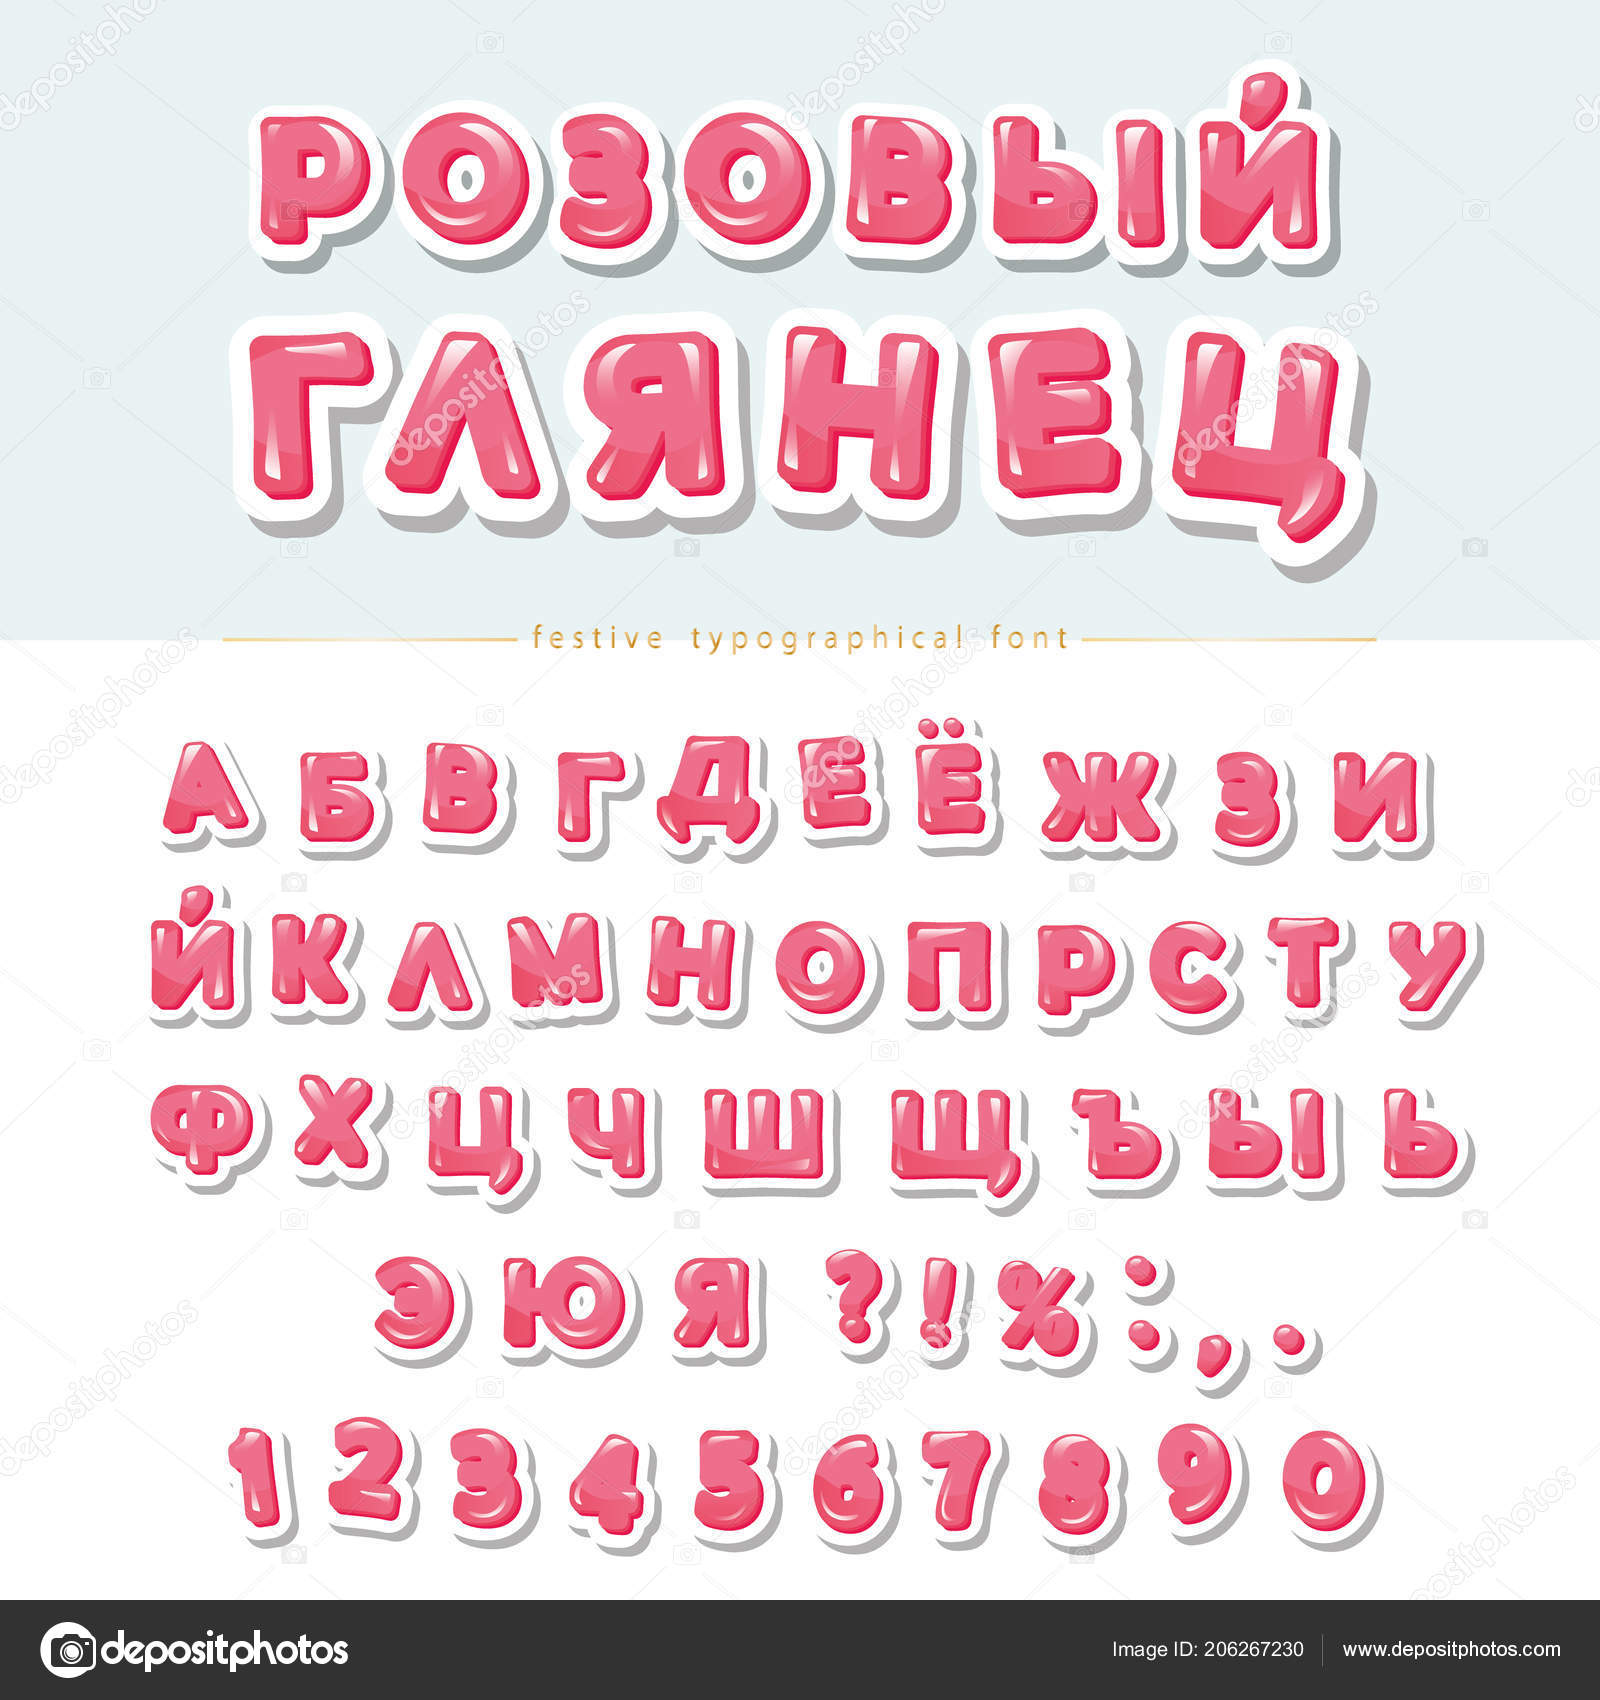 Cyrillic Glossy Pink Font Cartoon Paper Cutout Letters